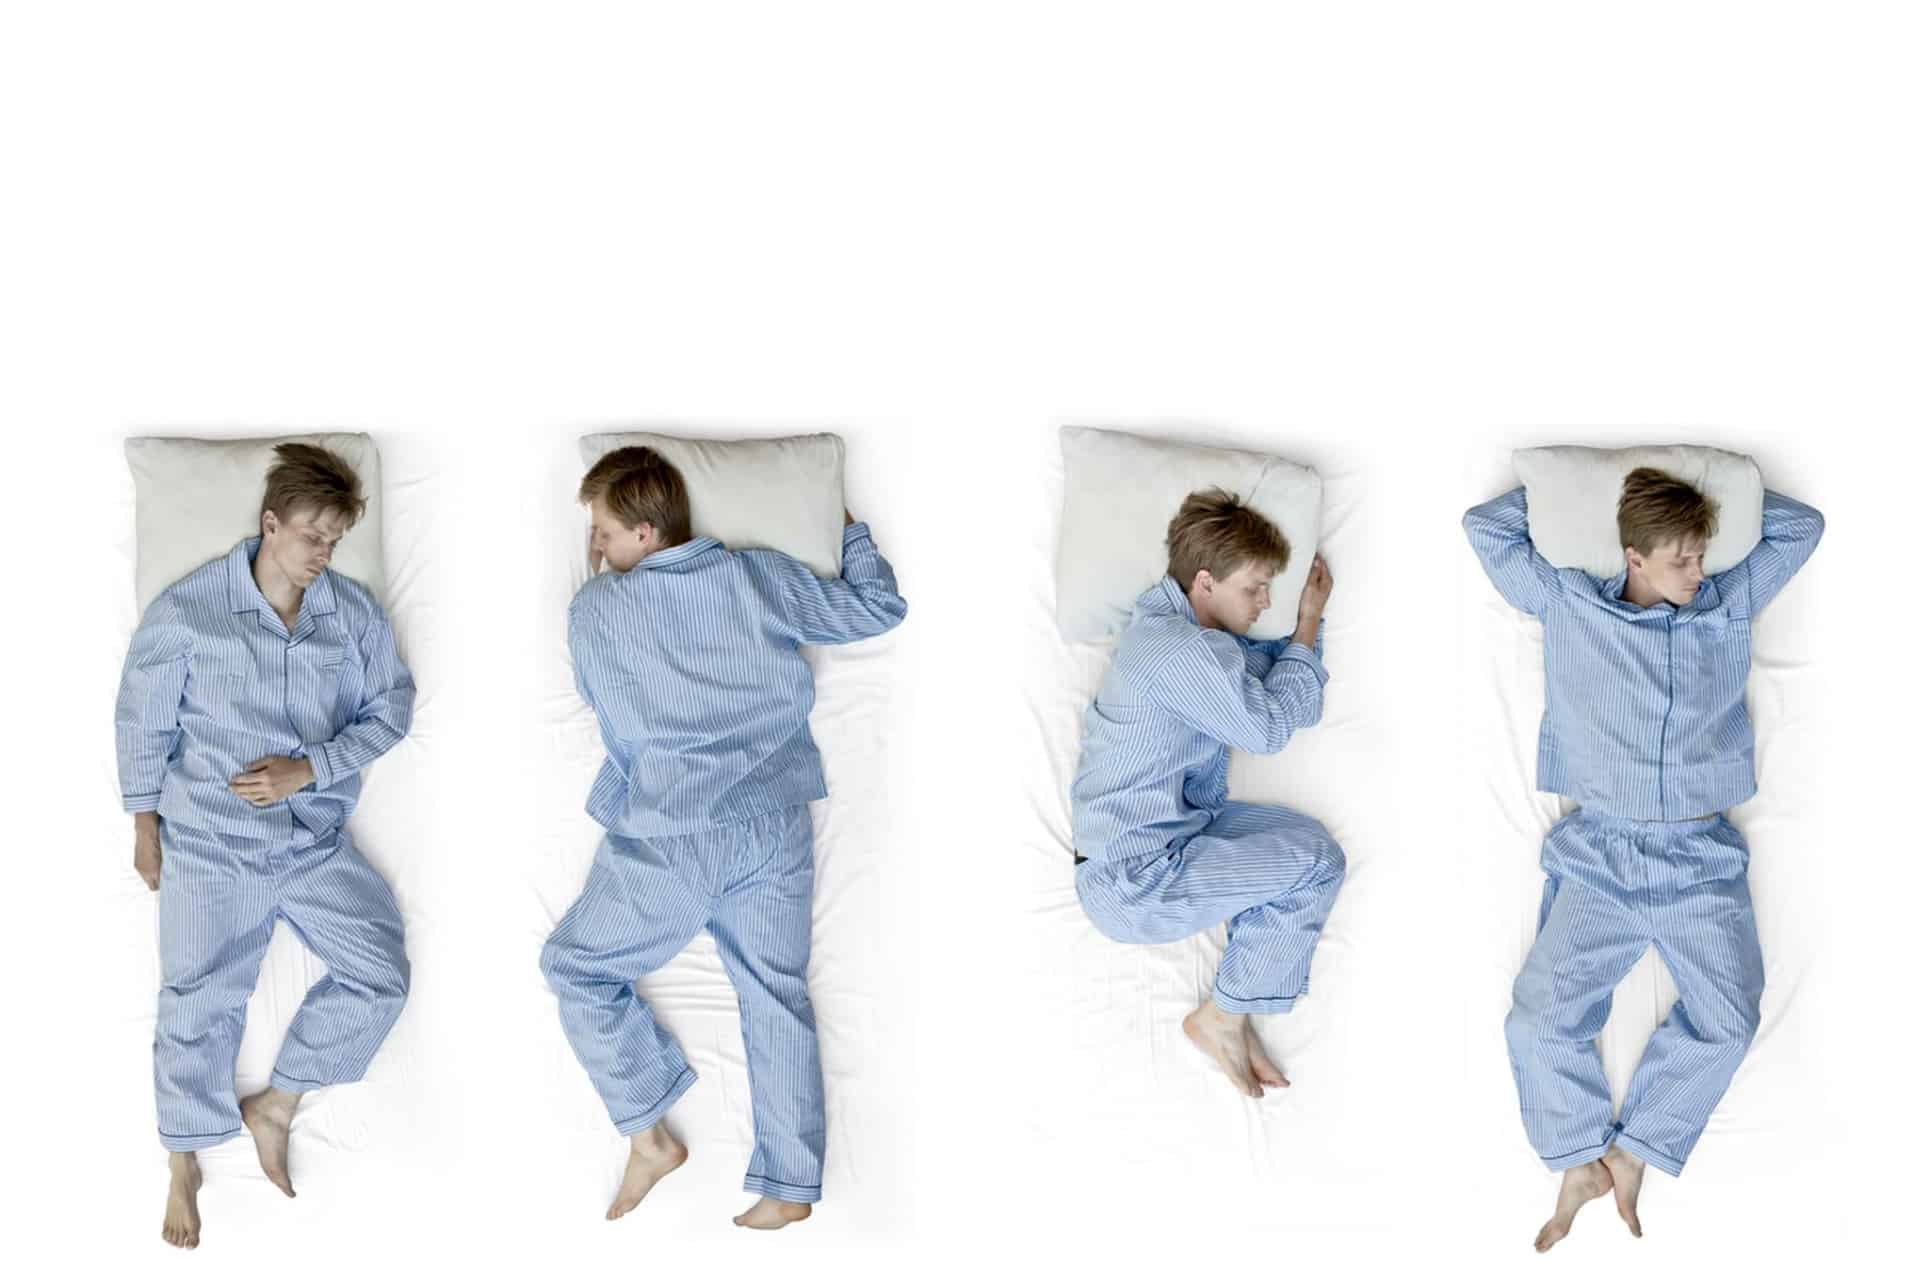 A man tries different sleeping positions in bed.